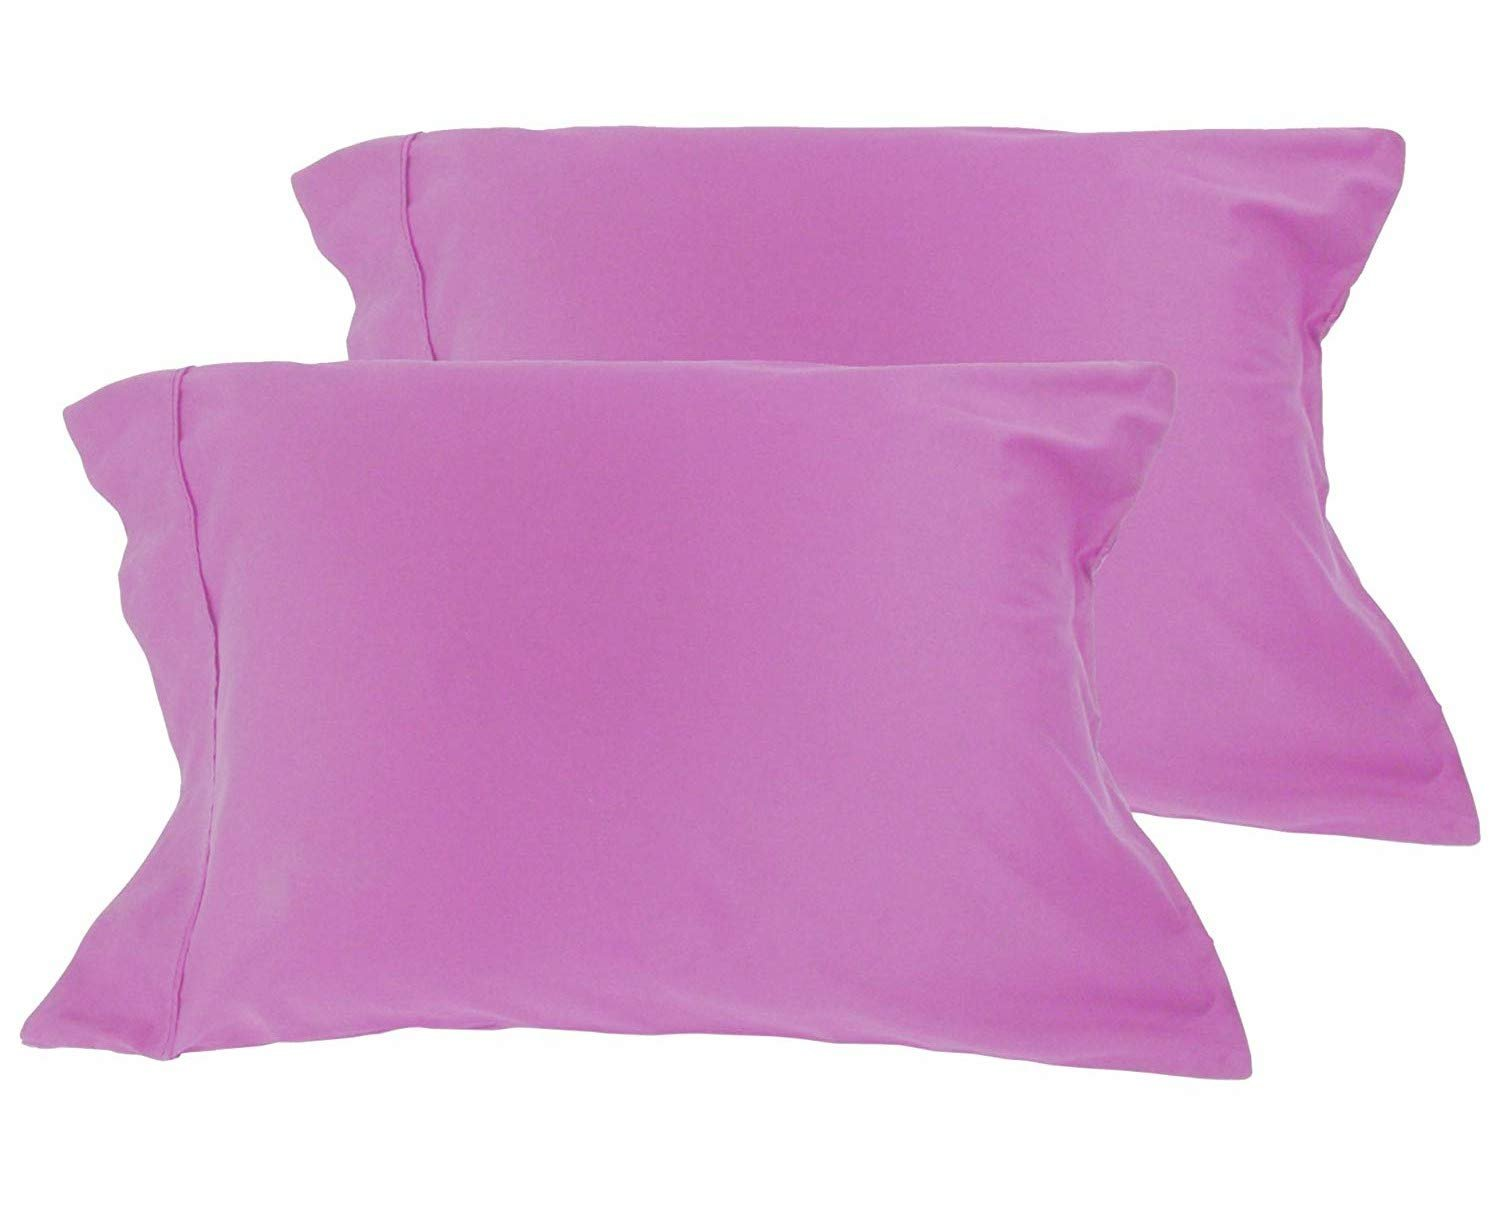 American Pillowcase 100% Cotton, High Thread Count, Luxury Set of Pillow Cases, Z-Style Hem Stitch, King 21x40 (fits 20x36 Pillow) - Lilac